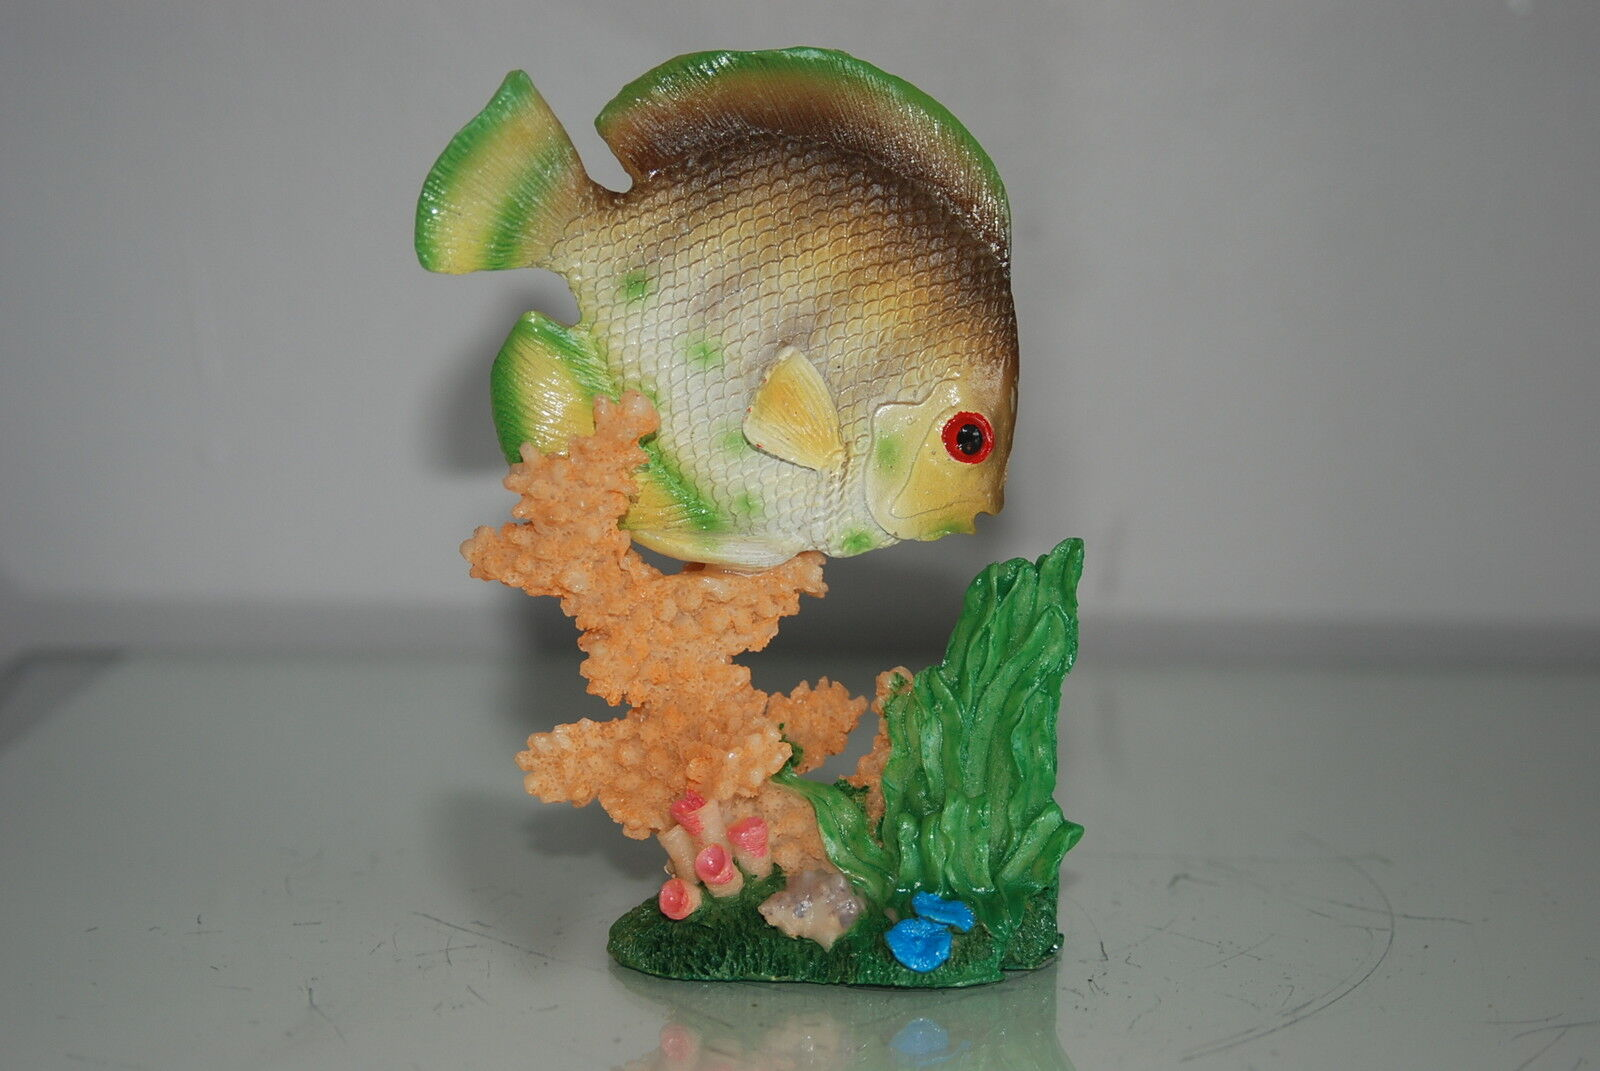 Aquarium Detailed Fish With Coral Base 9.5 x 5 x 14 cms For All Aquariums